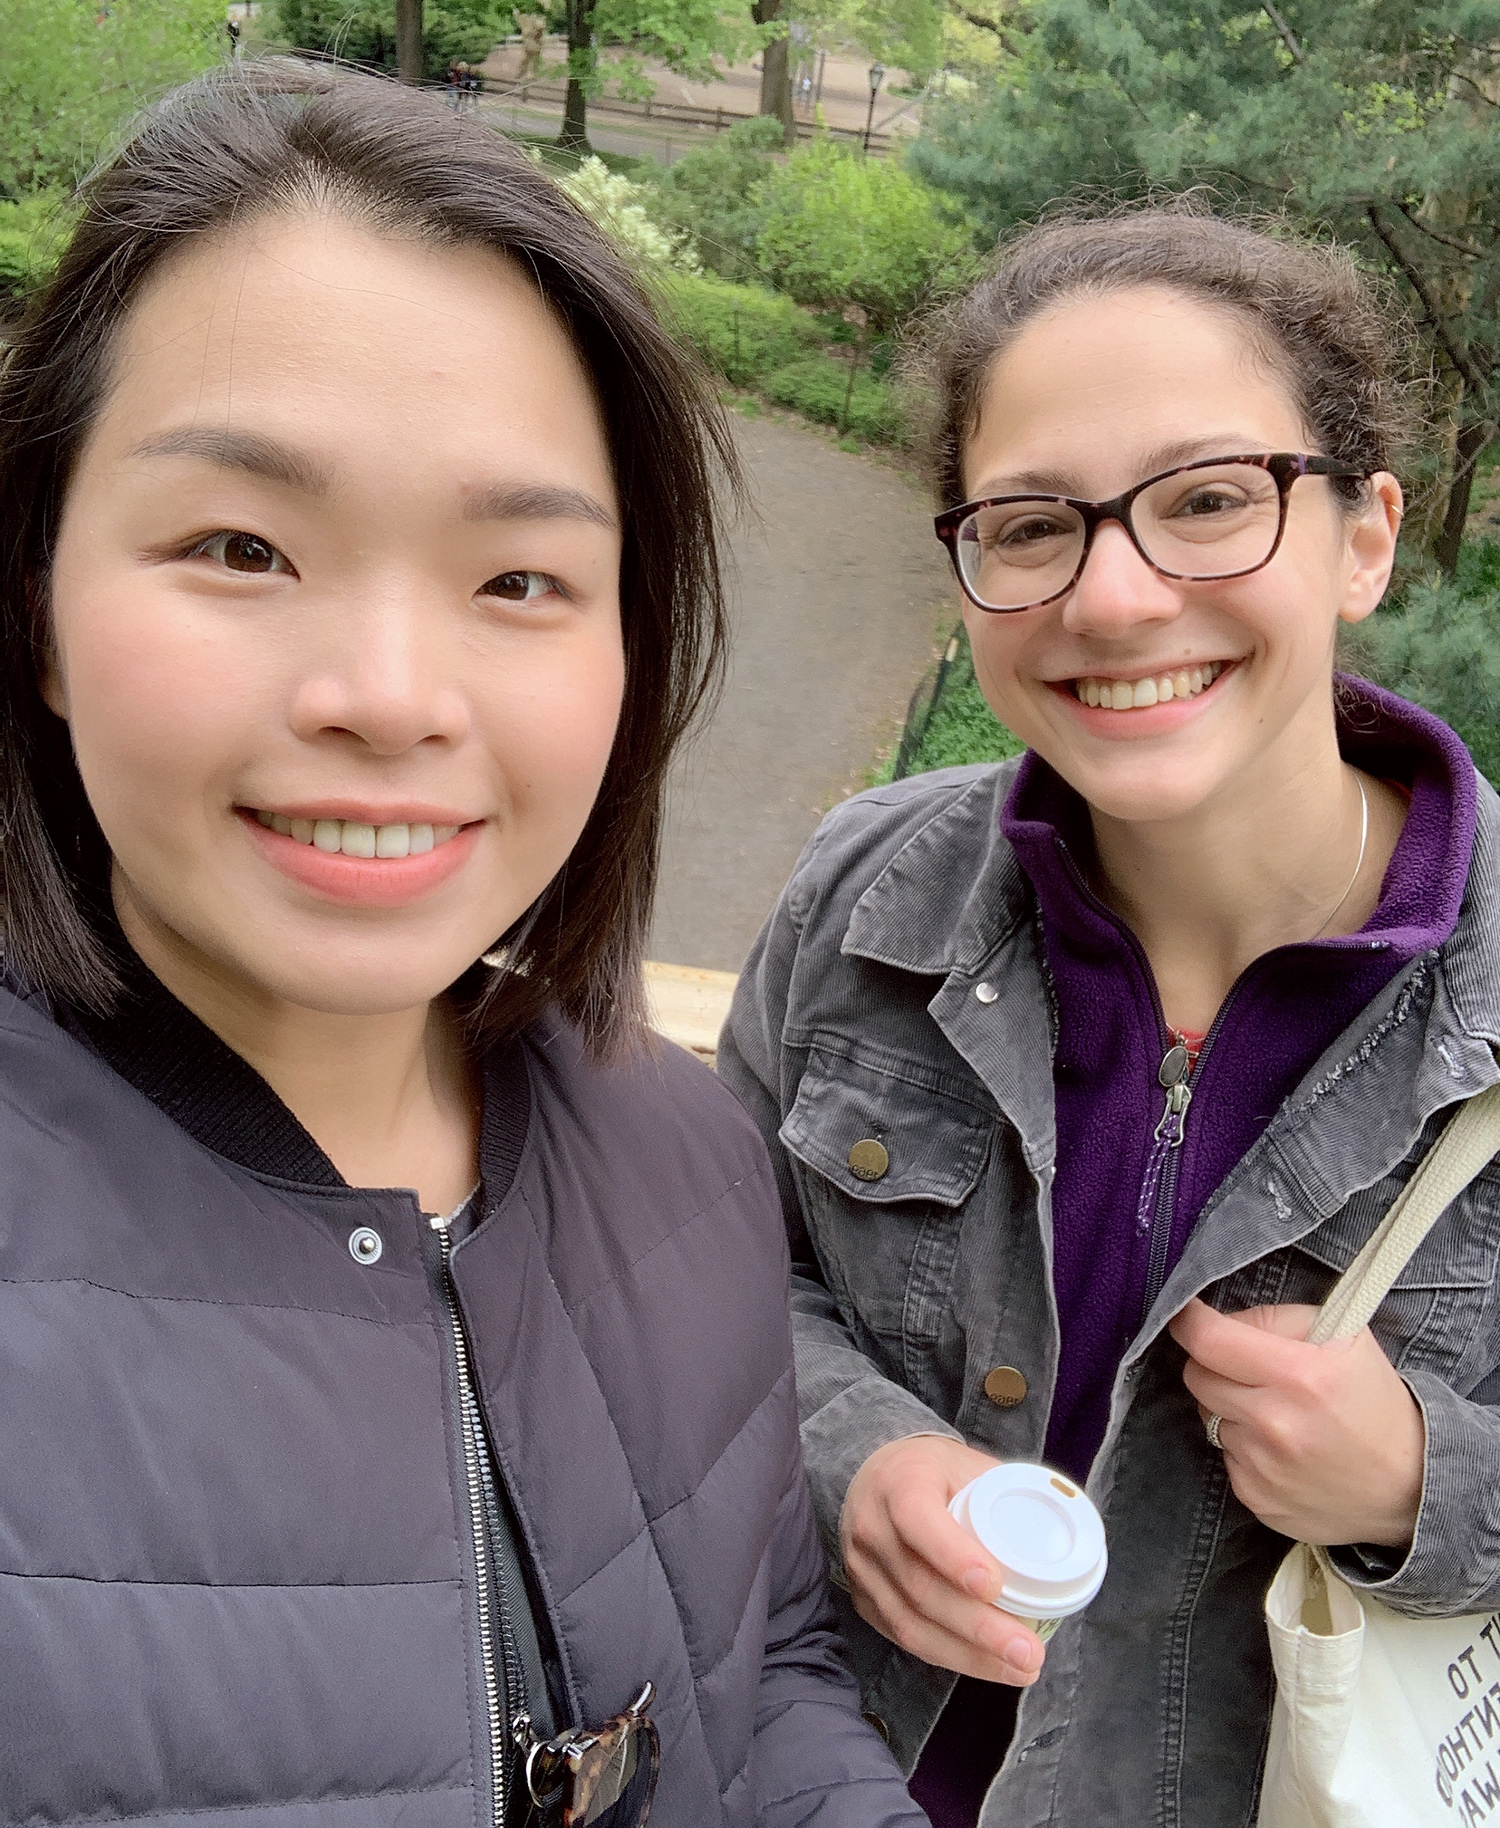 Alexa and Sodam in Central Park